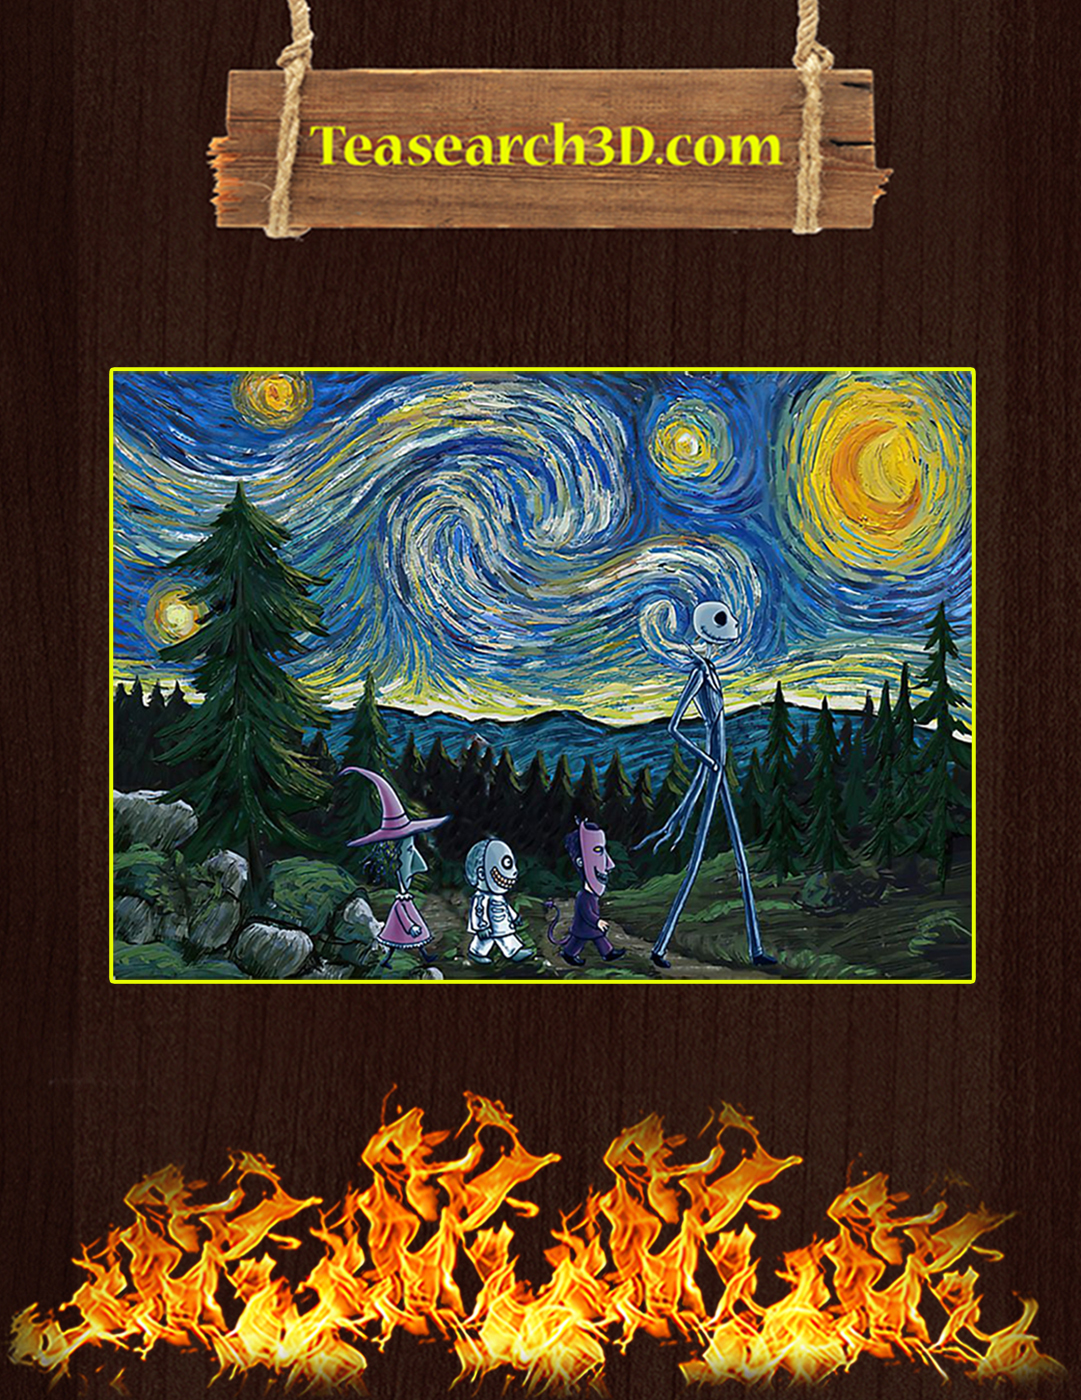 The nightmare before christmas starry night van gogh poster A2